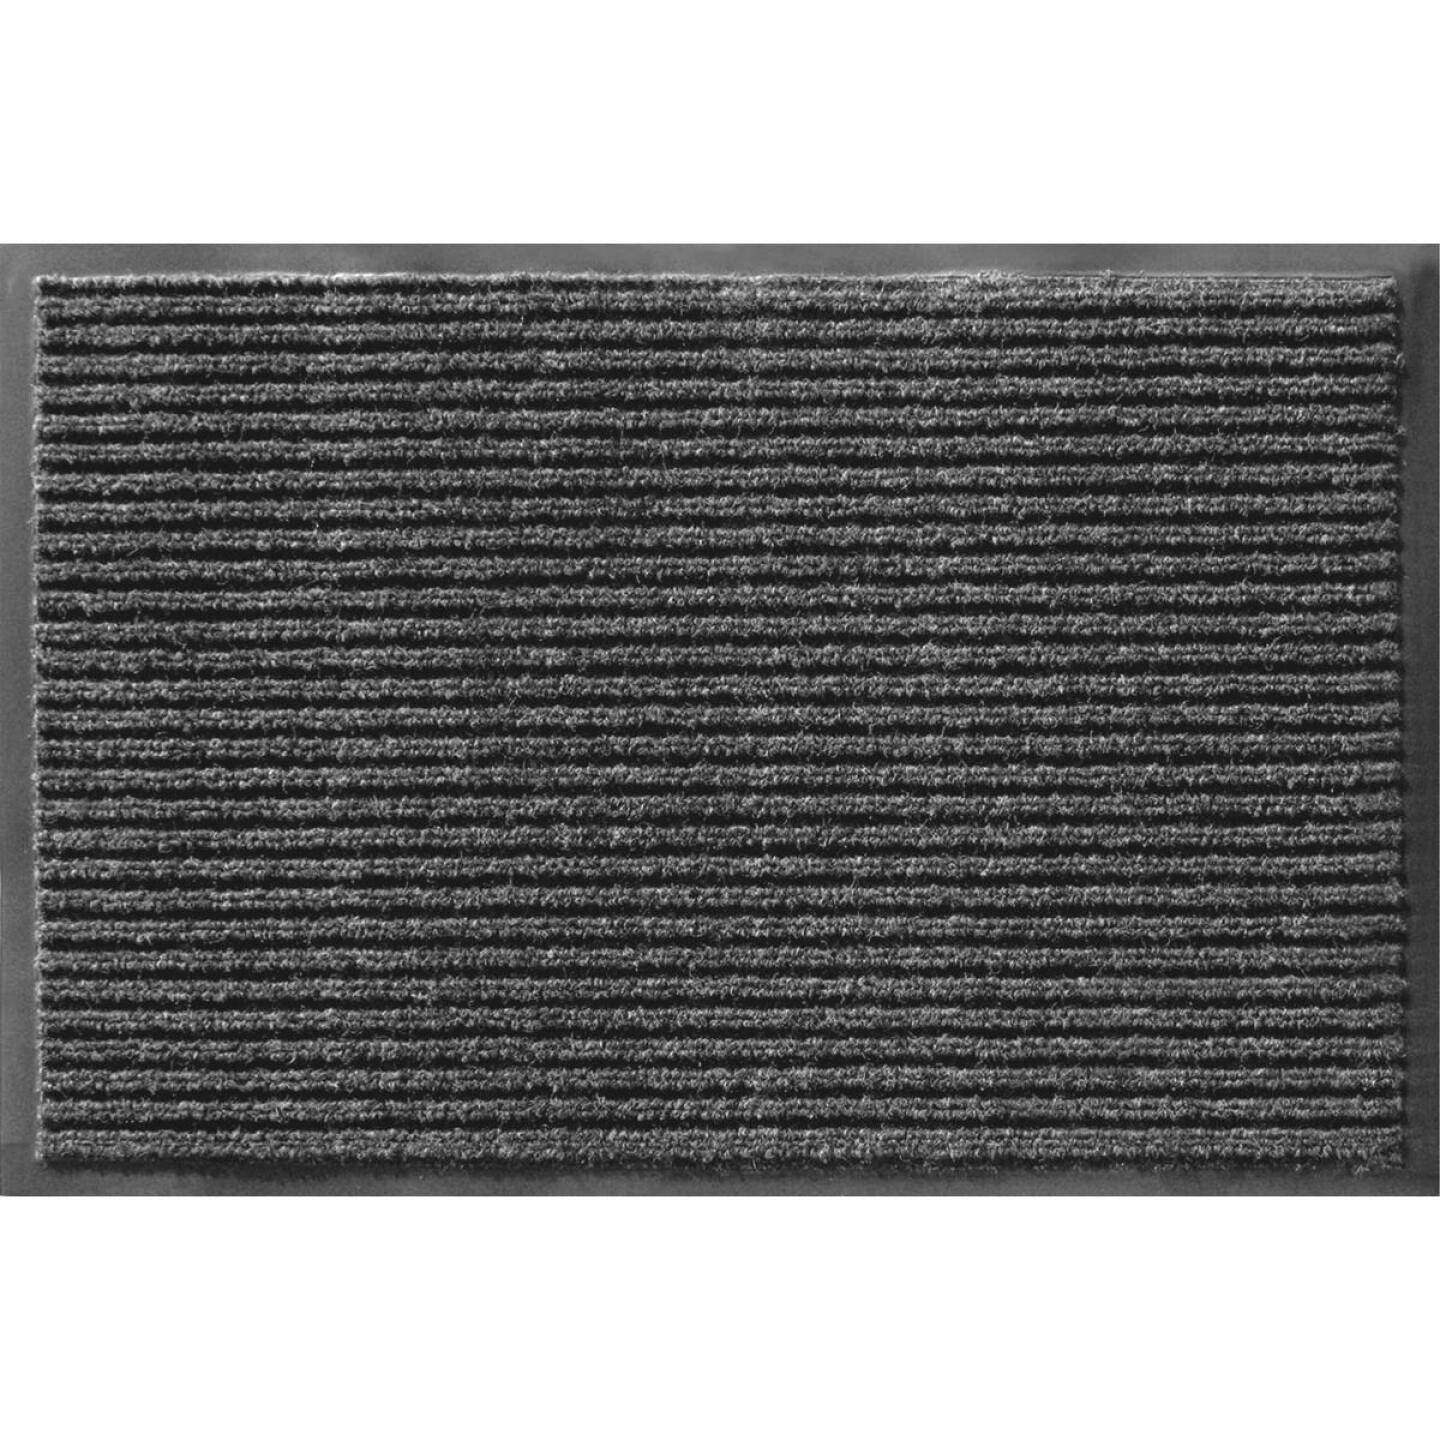 Apache Enviroback Pepper 24 In. x 36 In. Carpet/Recycled Rubber Door Mat Image 1